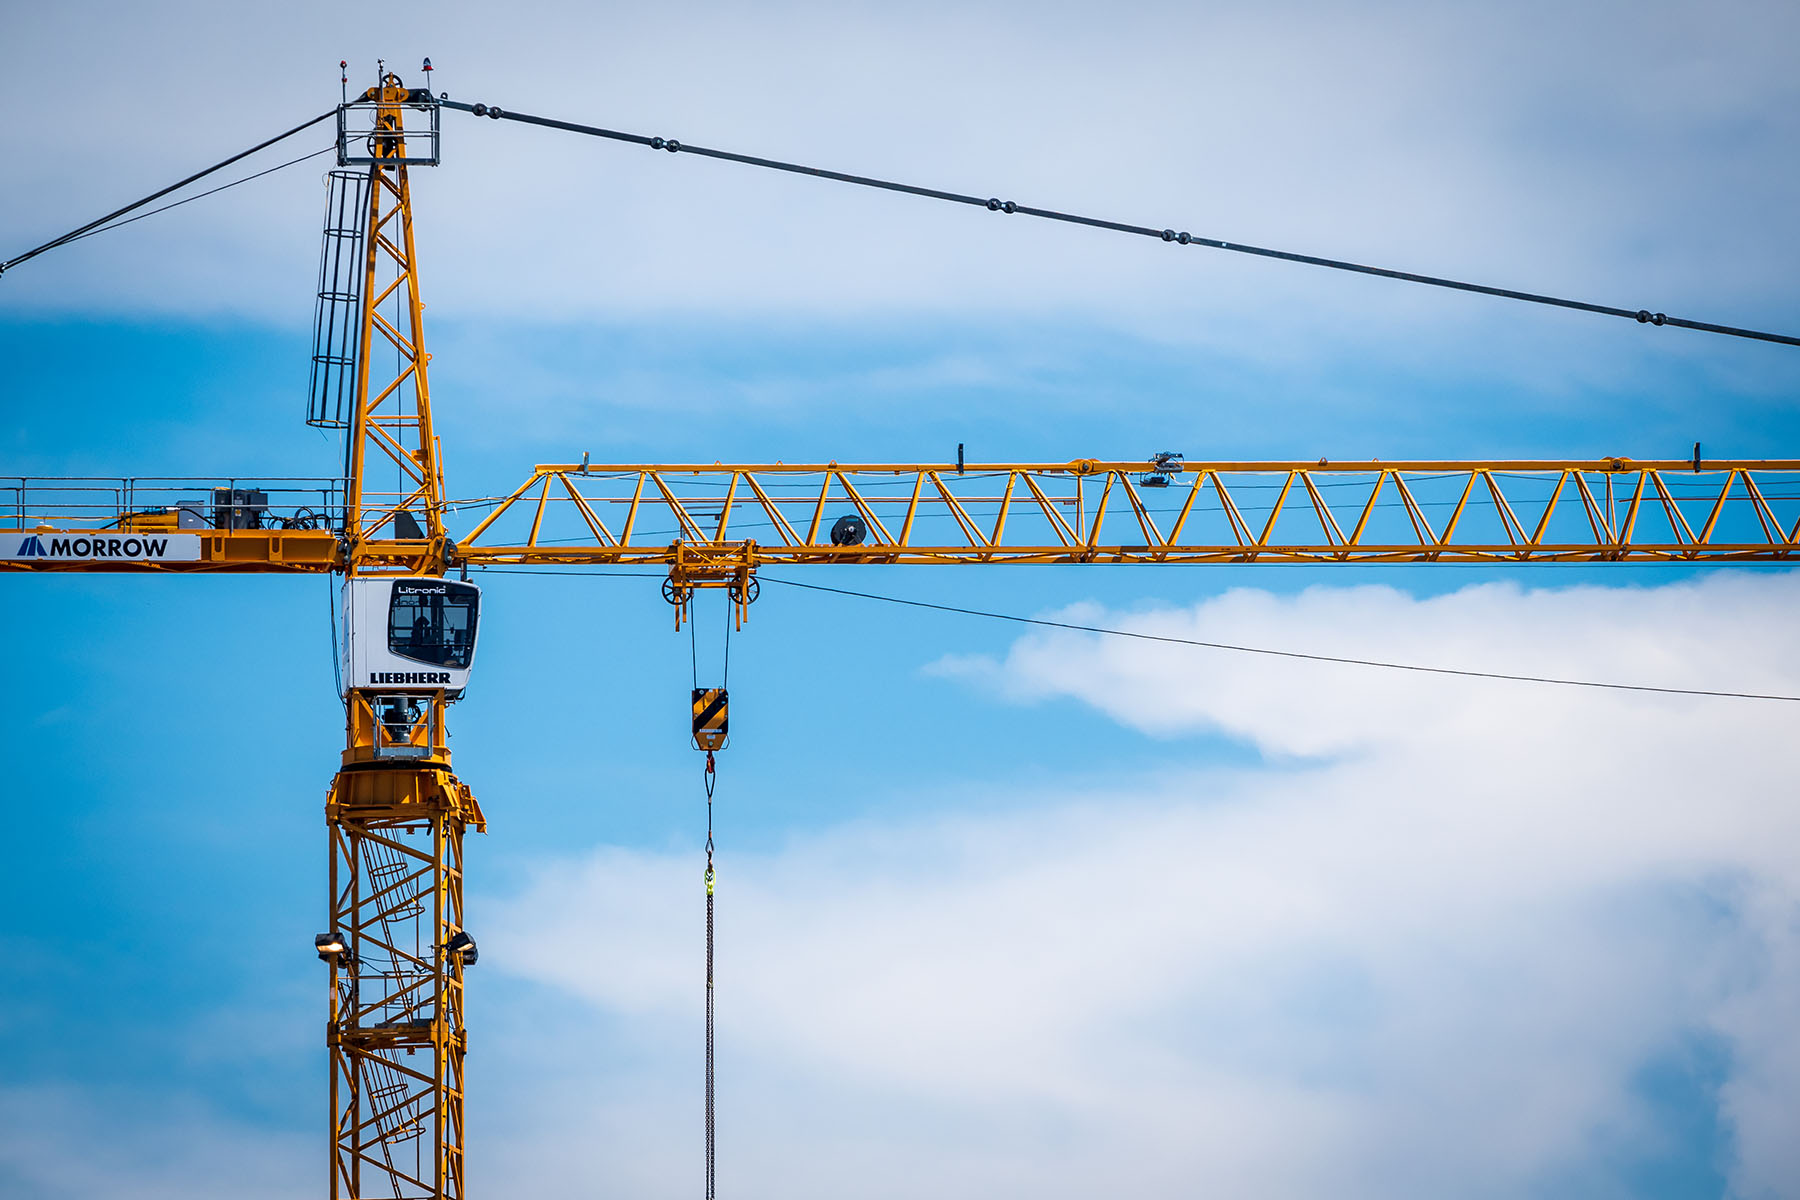 A tower crane at a construction site spotted in Seattle, Washington.